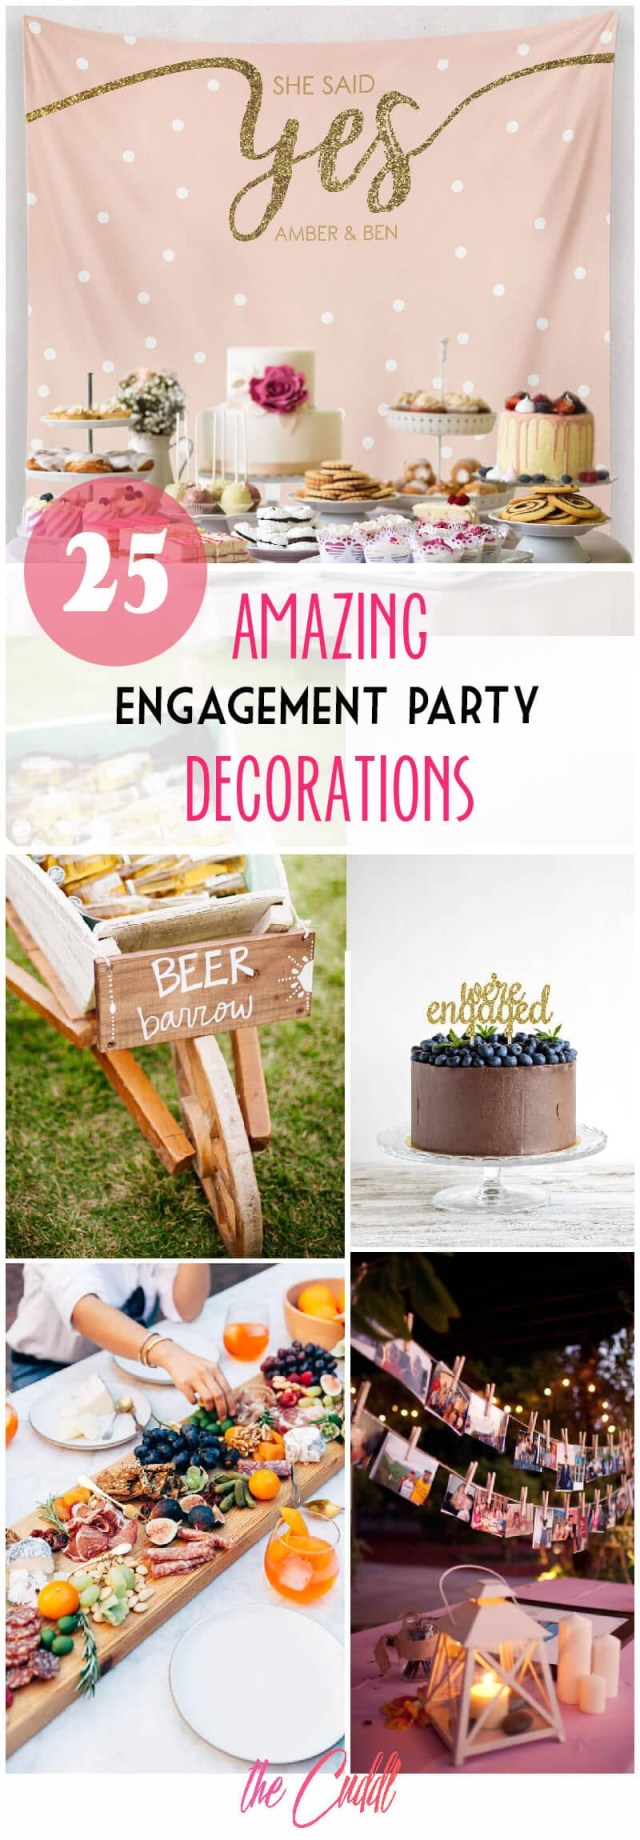 Engagement Decoration Ideas 25 Amazing Diy Engagement Party Decoration Ideas For 2019